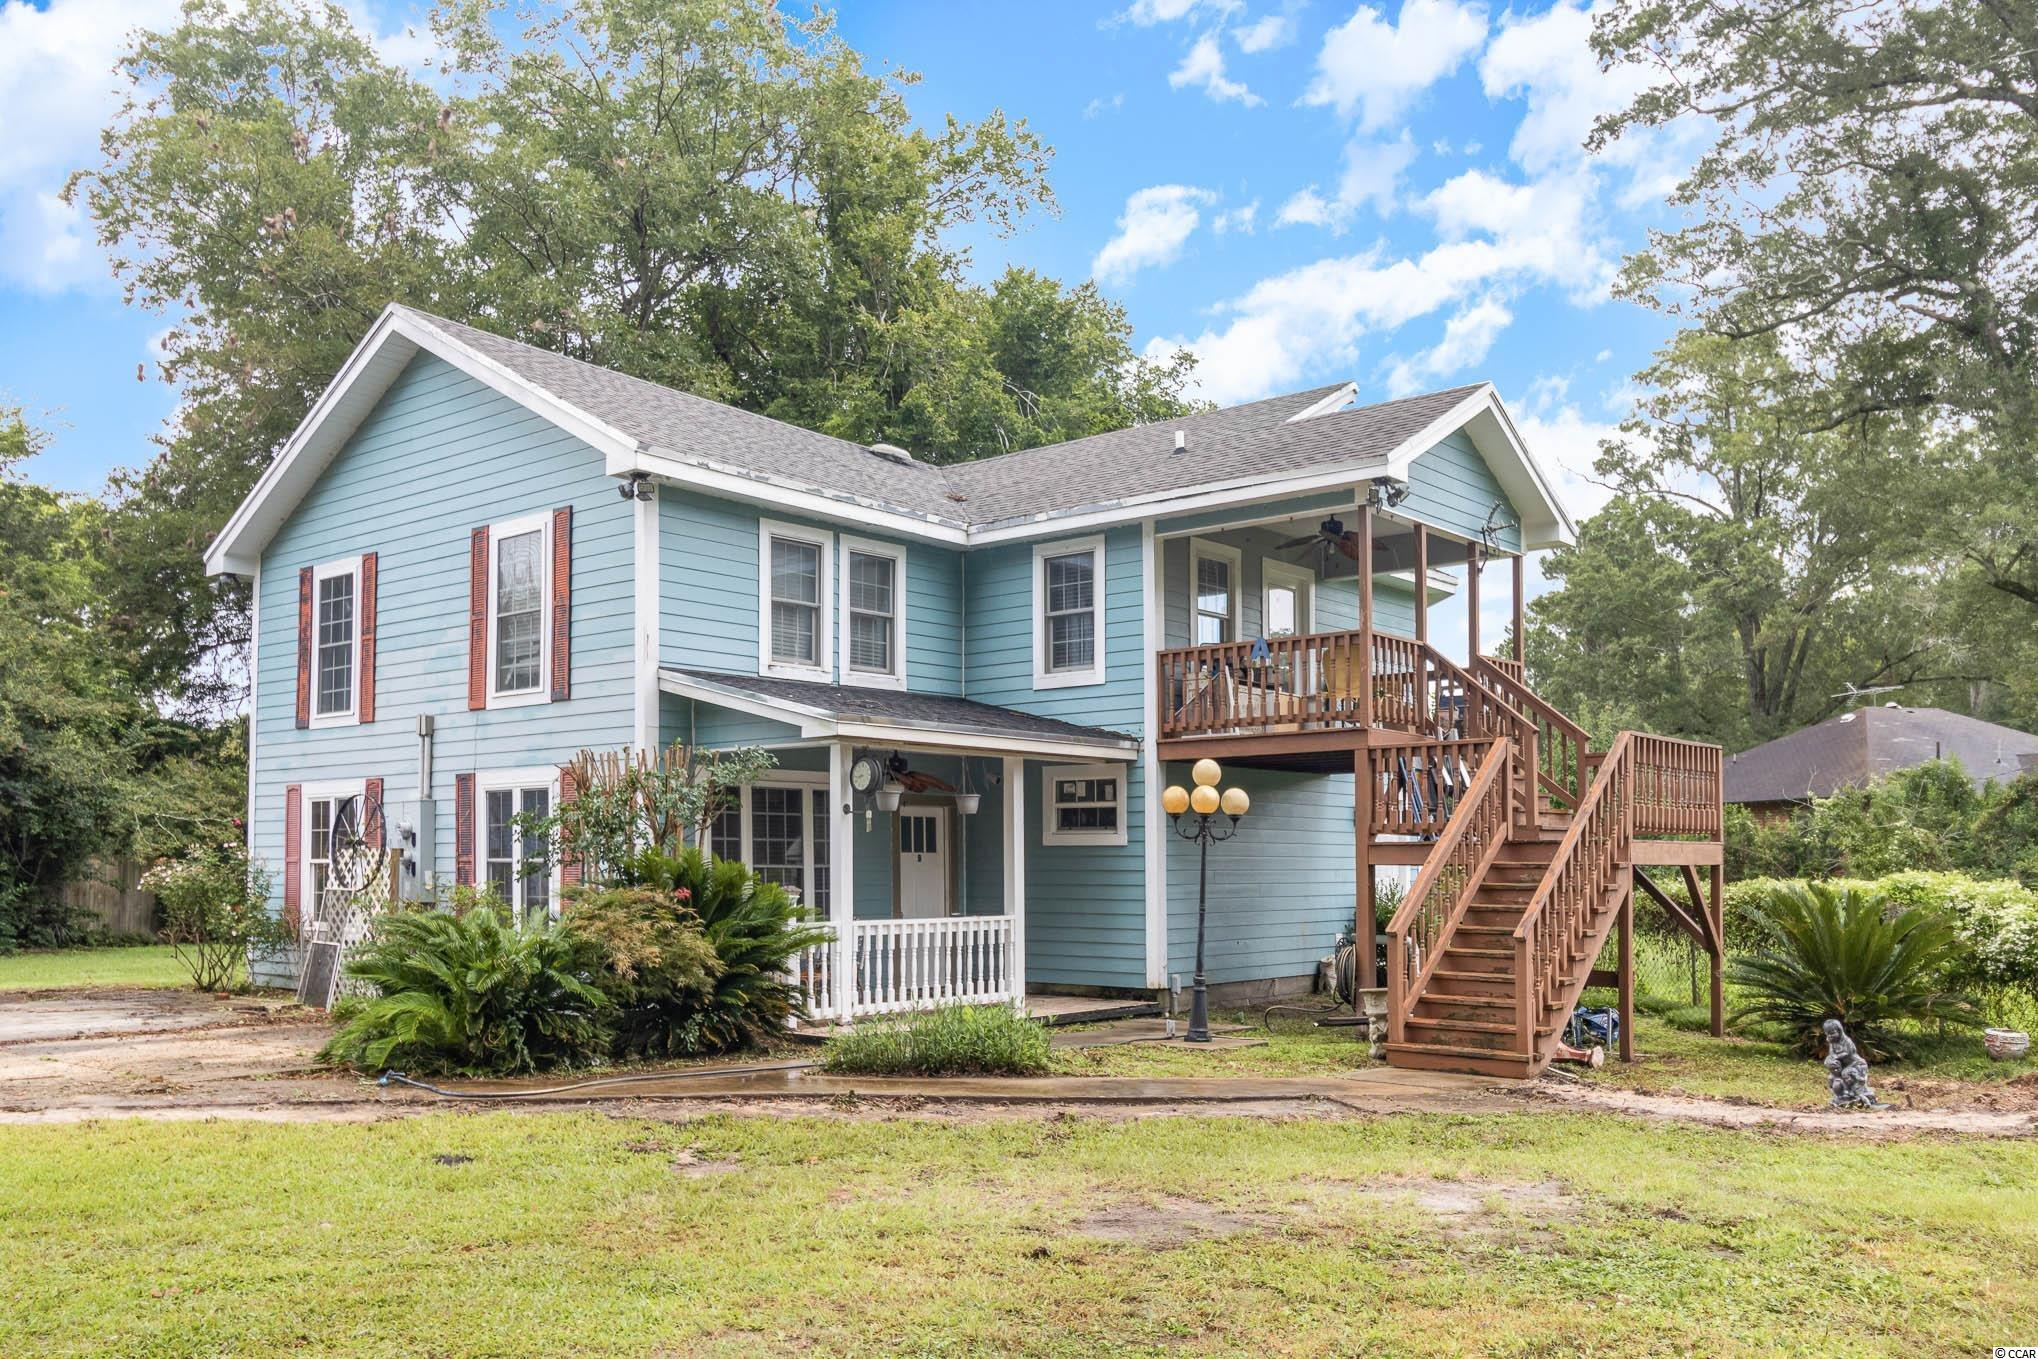 215 2nd Ave. Marion, SC 29571